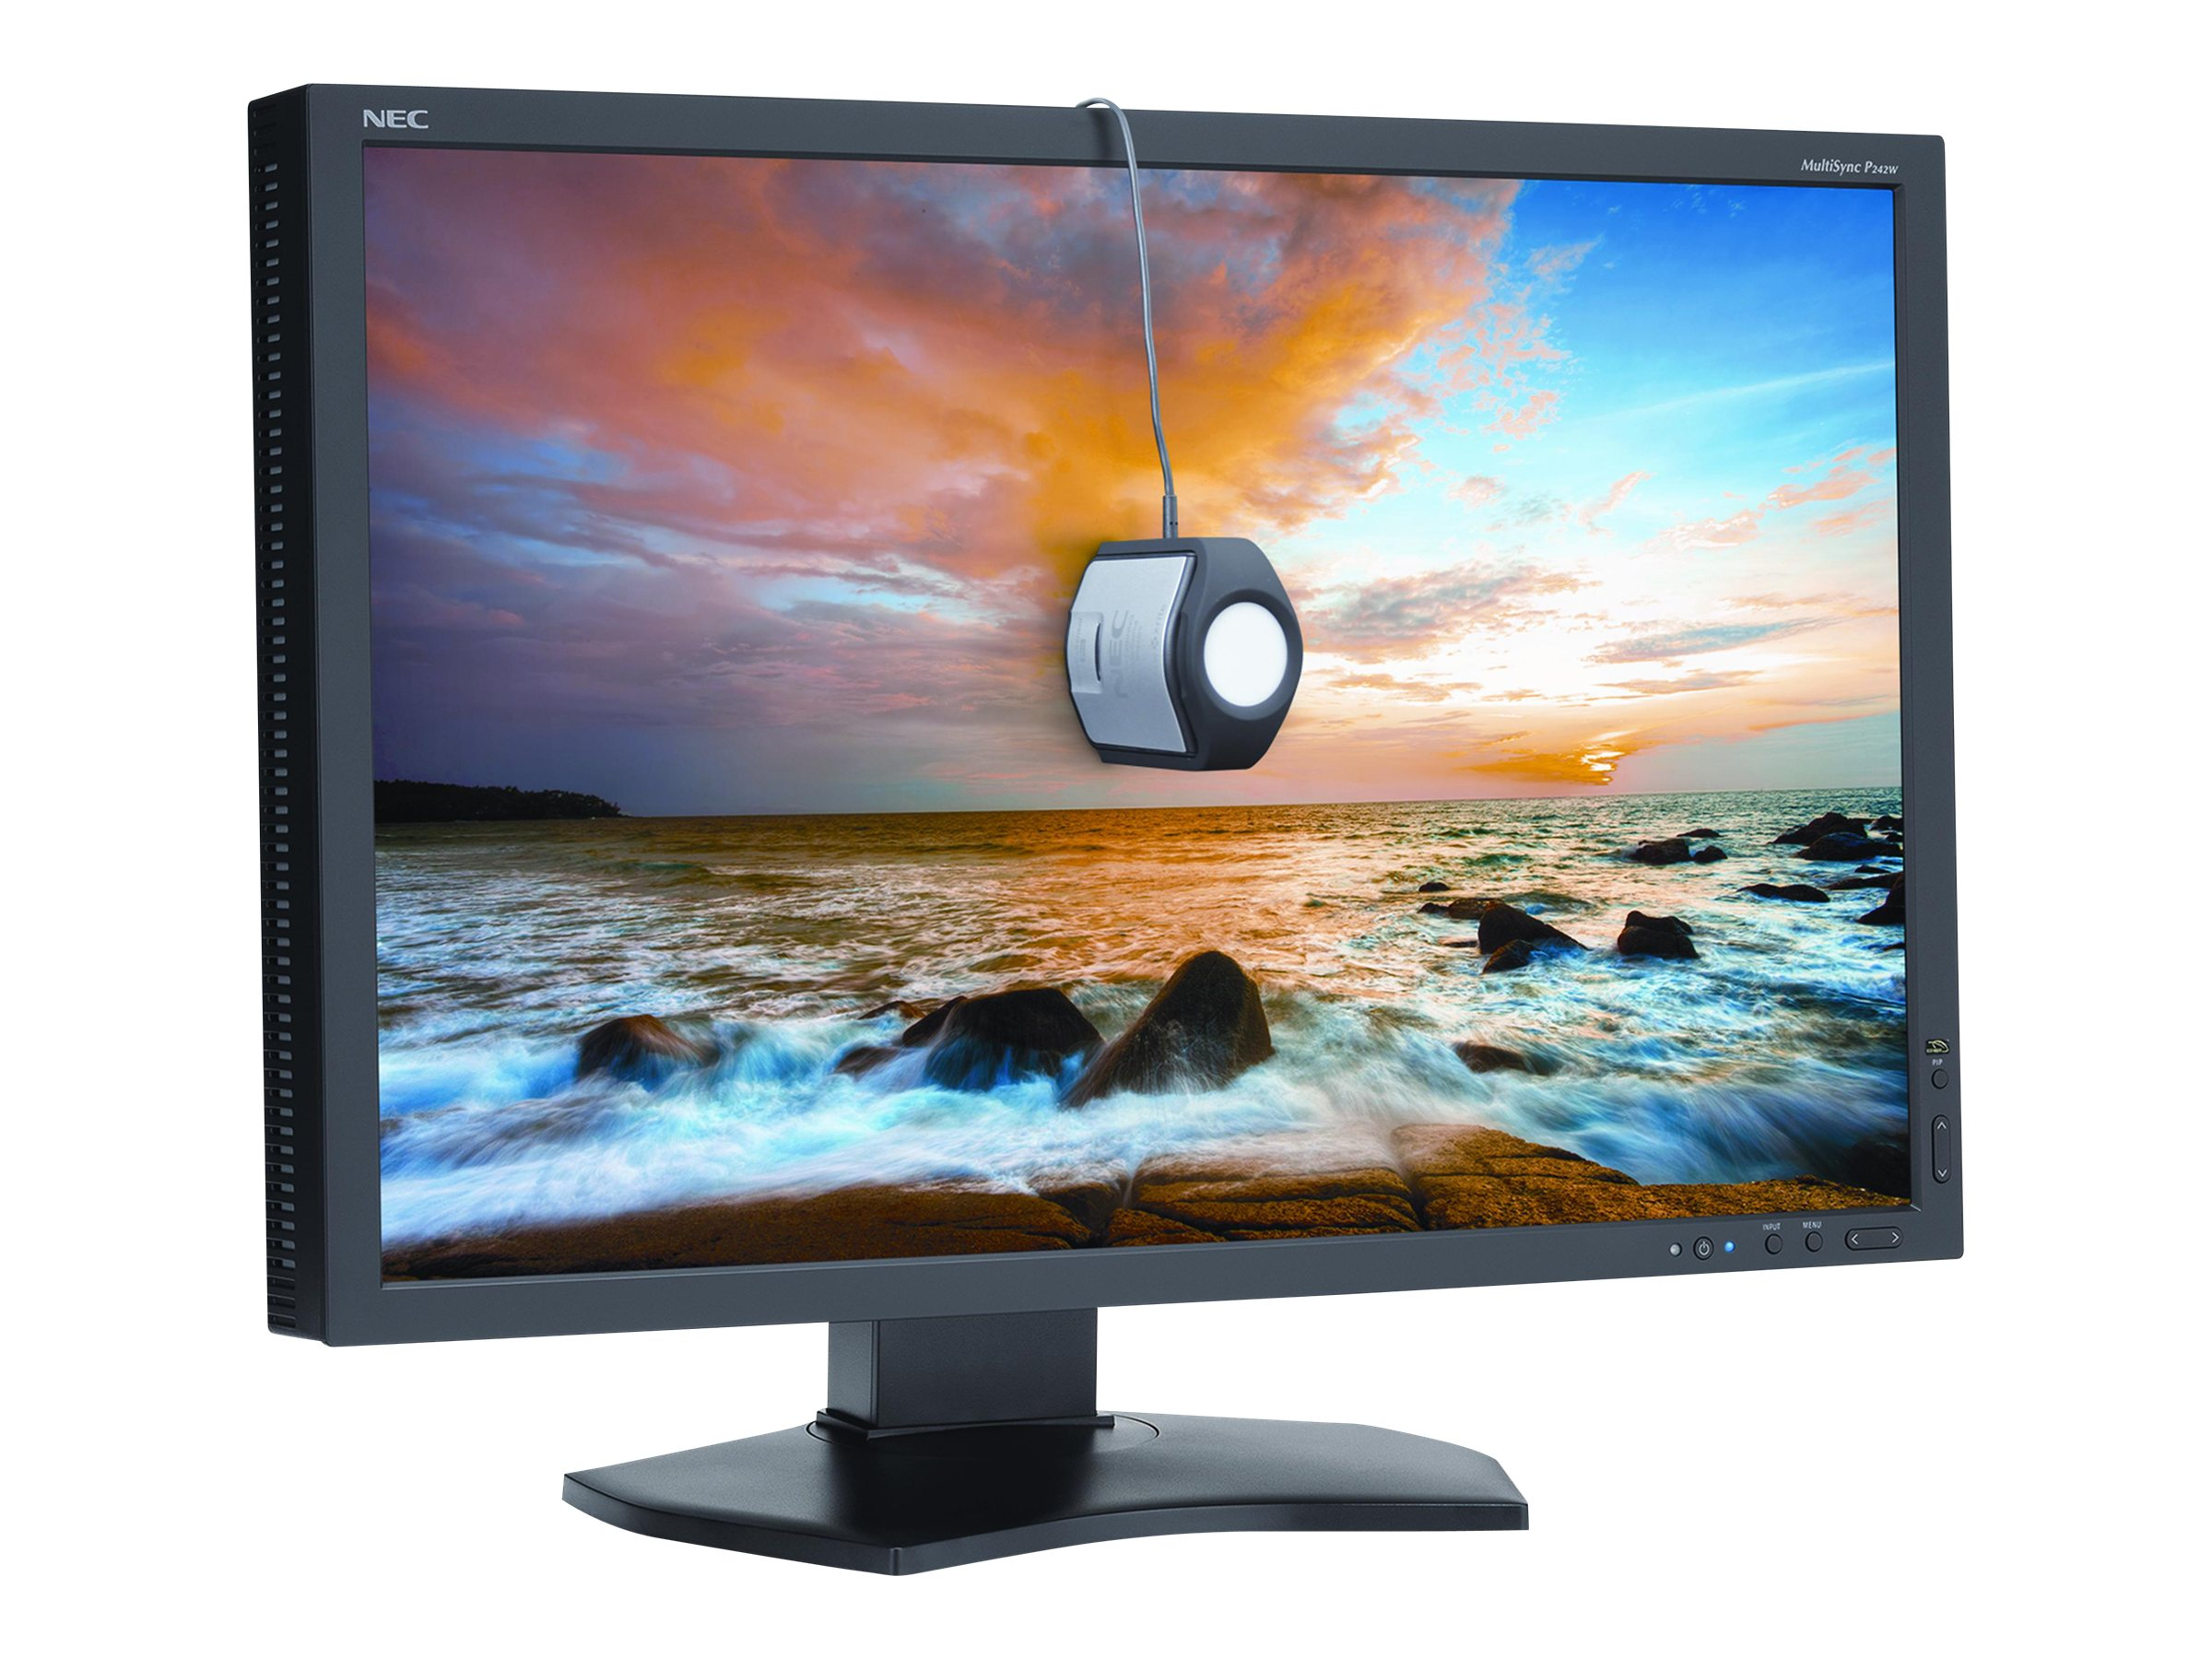 NEC 24.1 PA242W-BK LED-LCD Monitor with SpectraViewII, PA242W-BK-SV